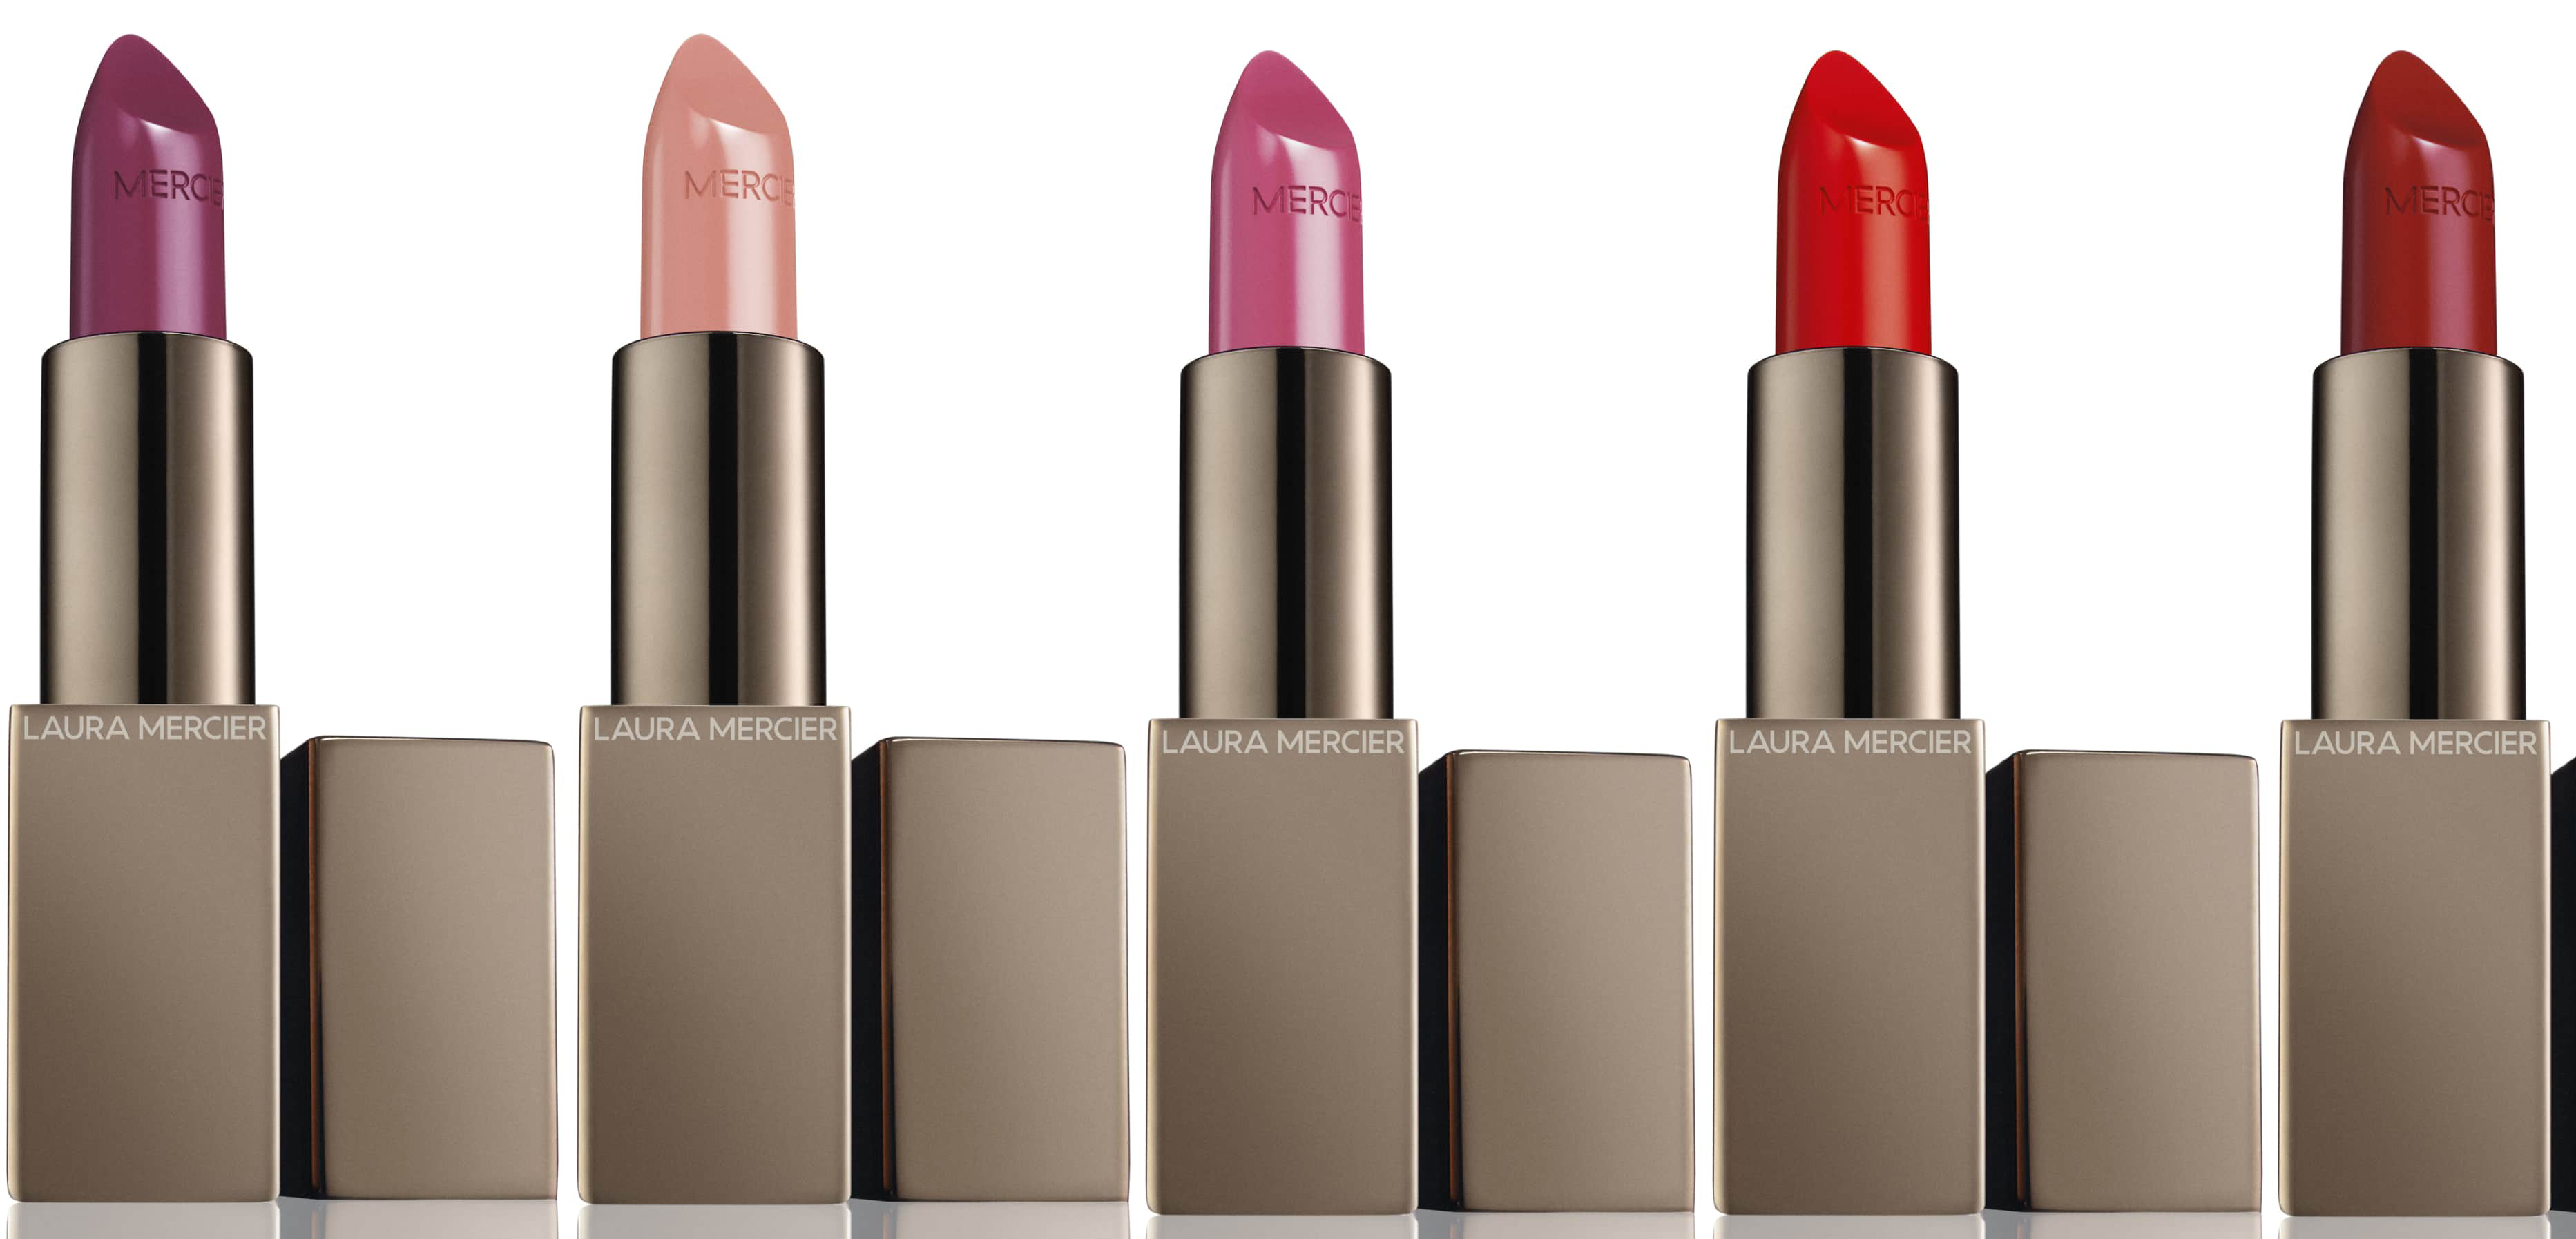 Rouge Essentiel Silky Creme Lipstick by Laura Mercier #20